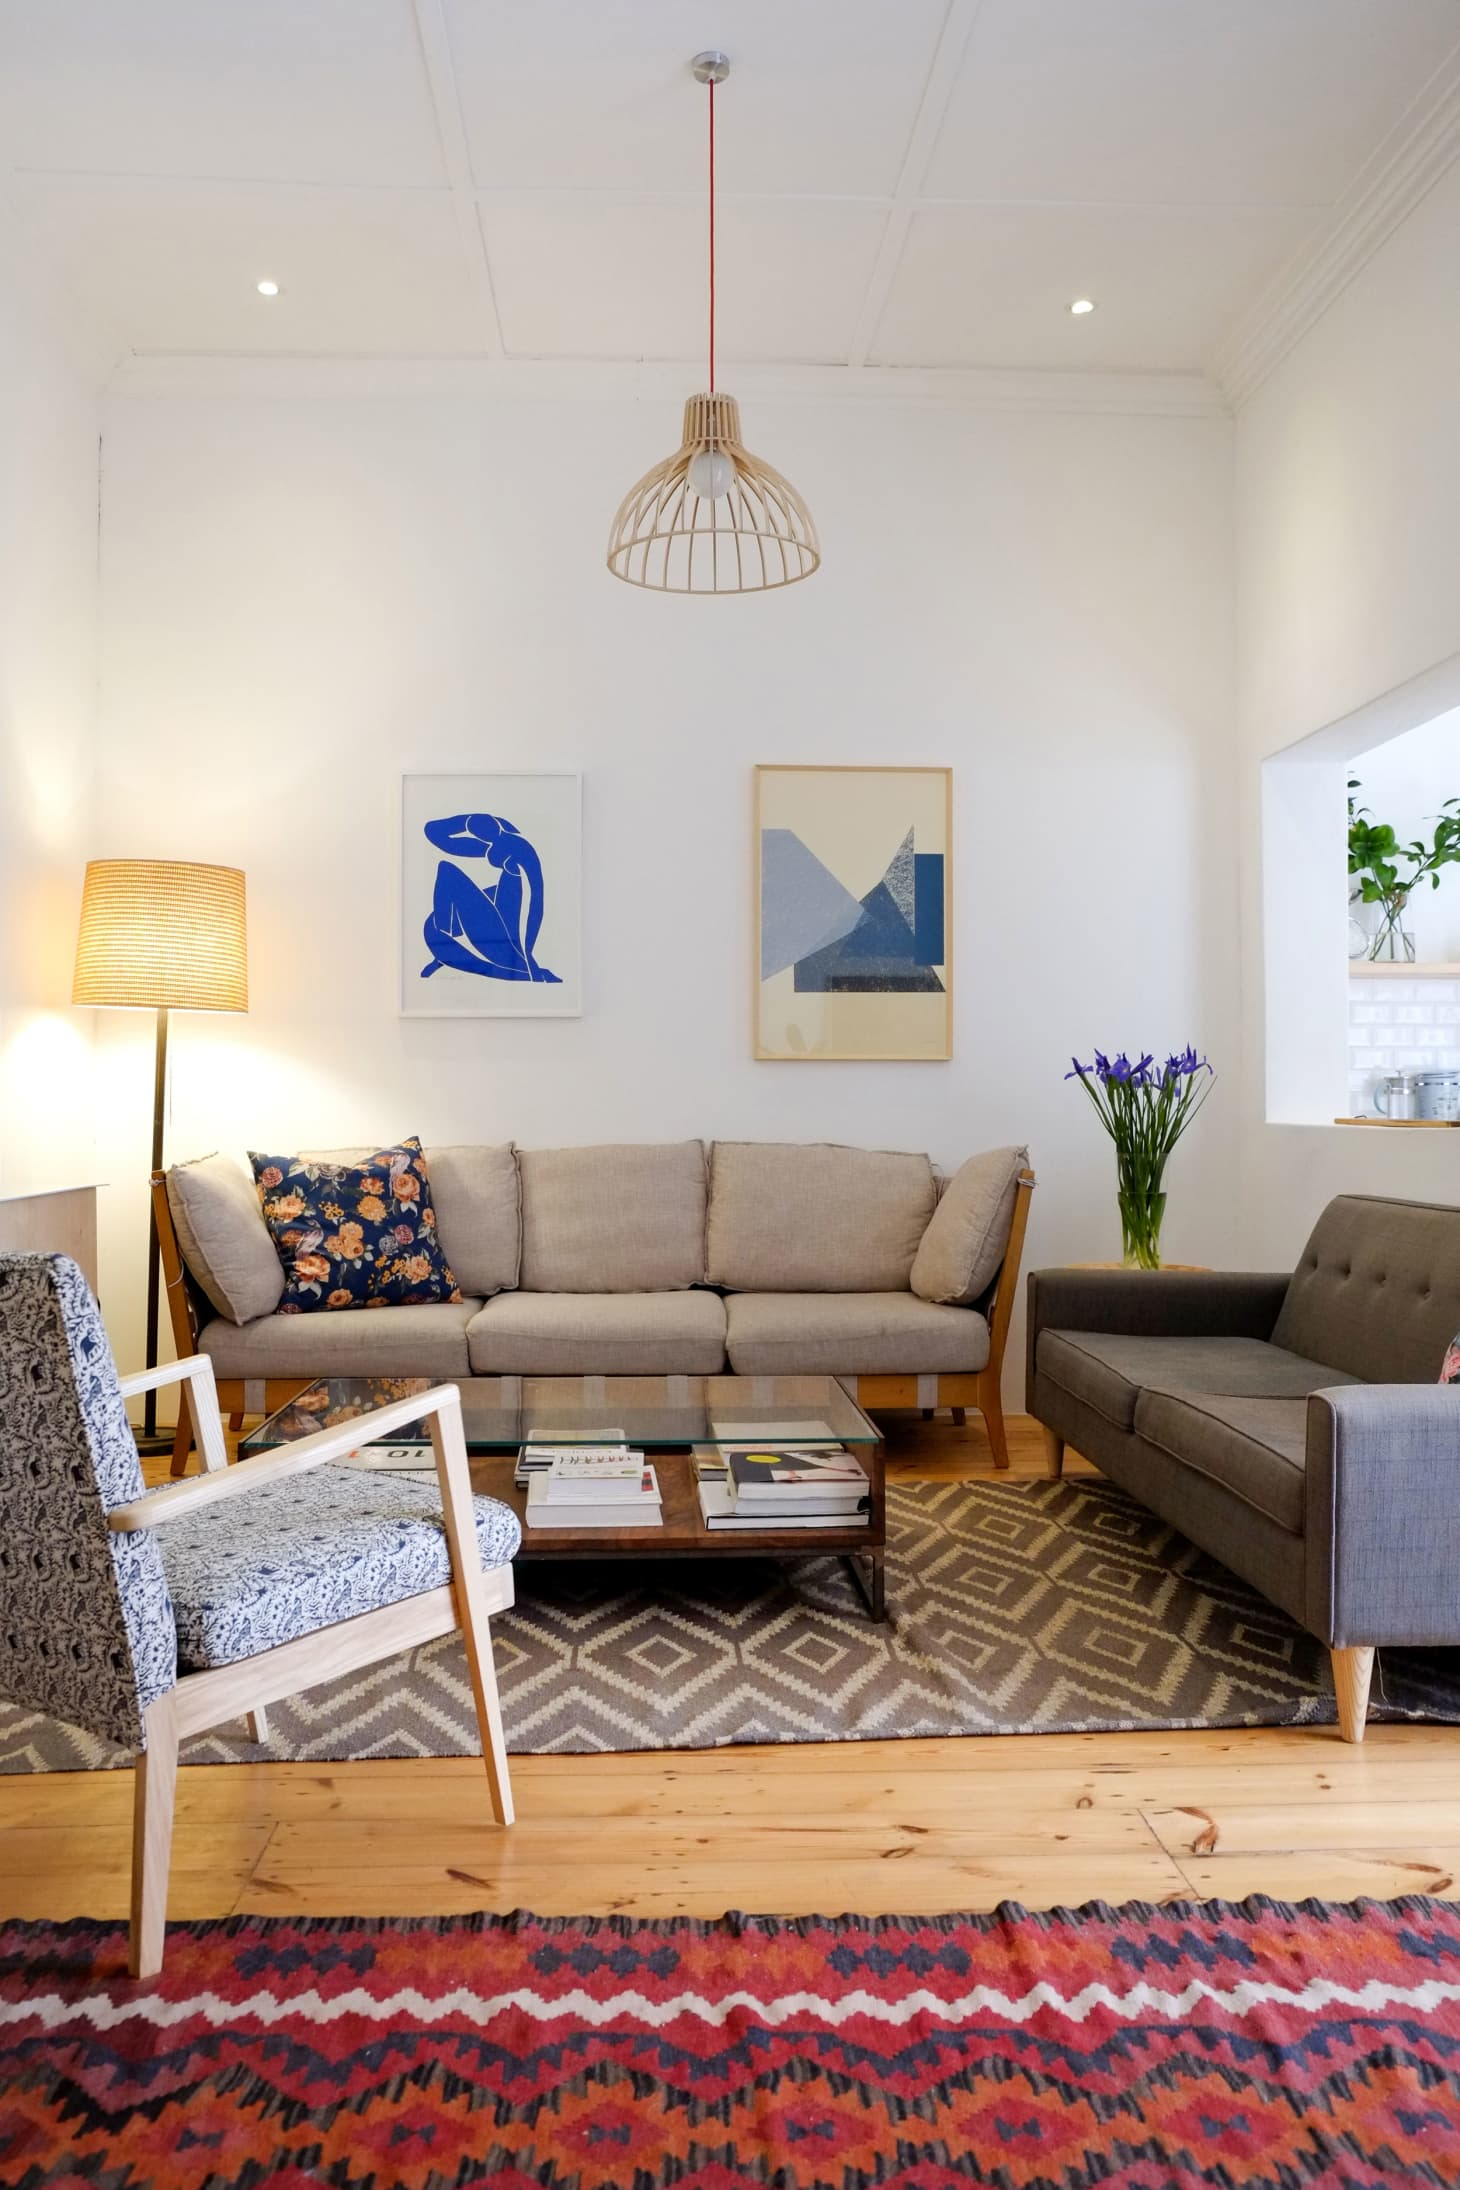 House Tour: Colorful Scandi Style in Cape Town | Apartment